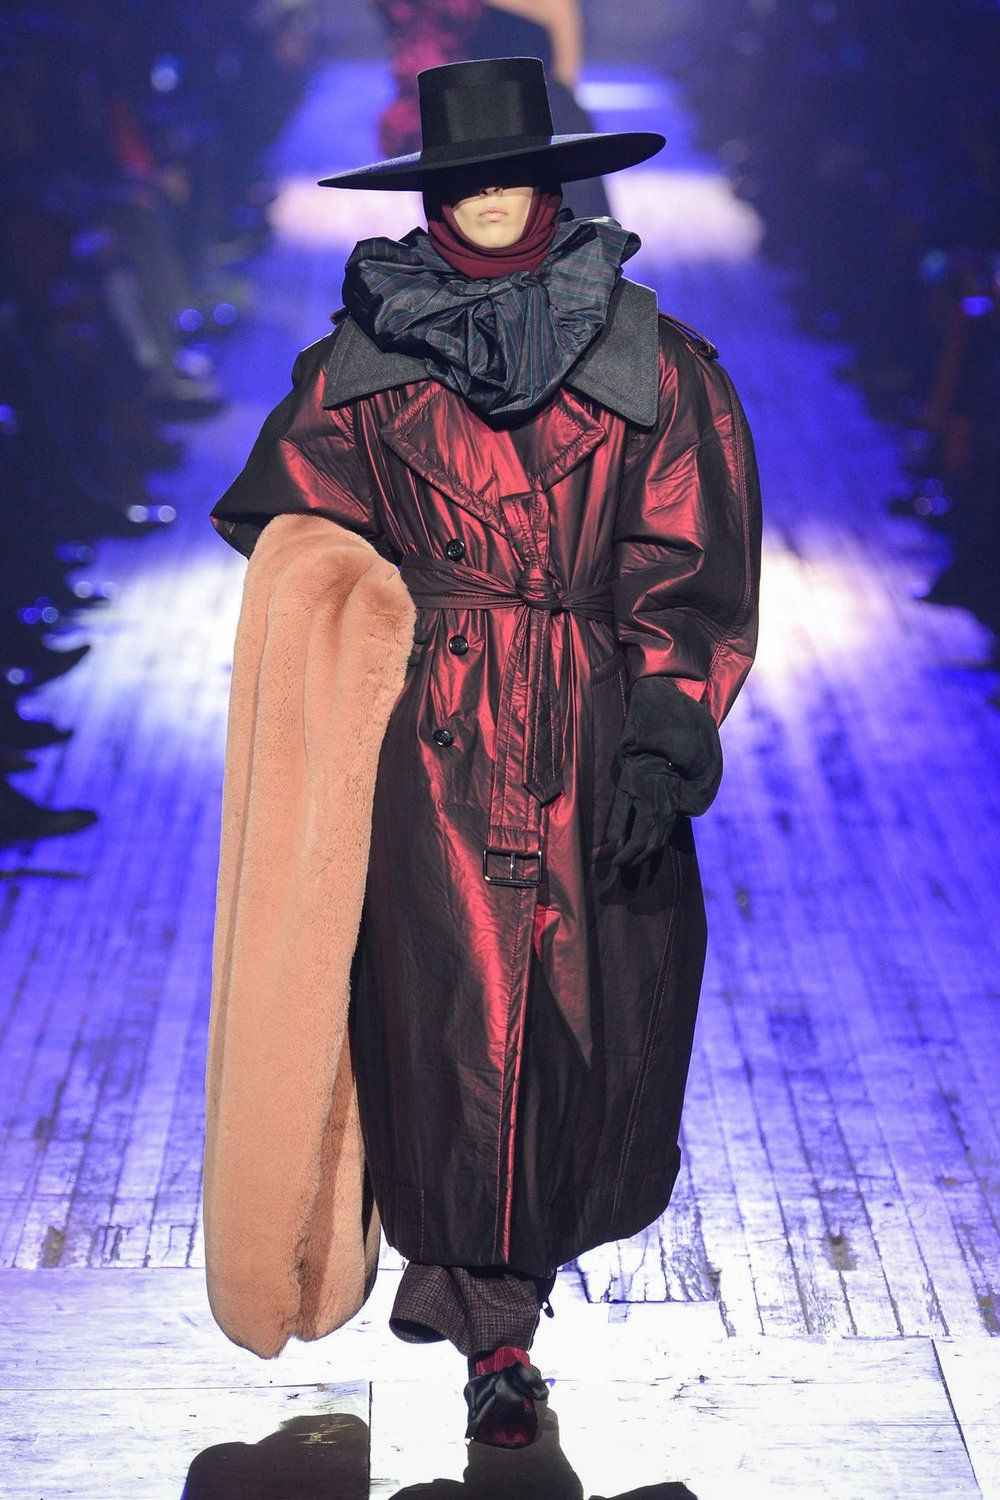 marc_jacobs_look_43_ready_to_wear_autumn_2018.jpeg